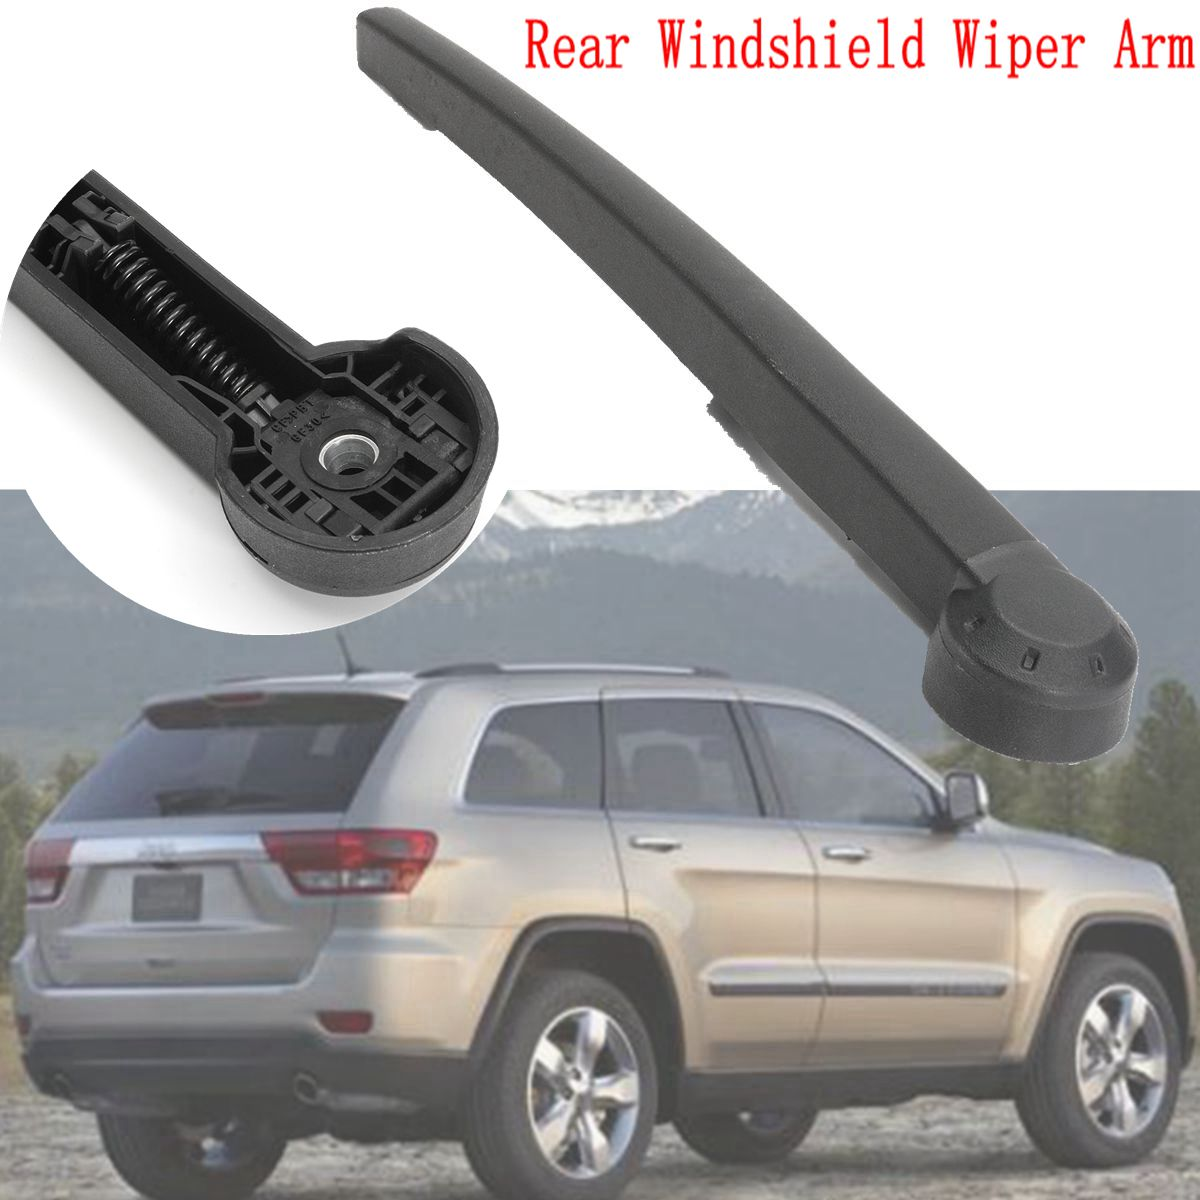 Rear Wind Shield Wiper Arm For Jeep Grand Cherokee 2005 2006 2007 2008 2009 2010